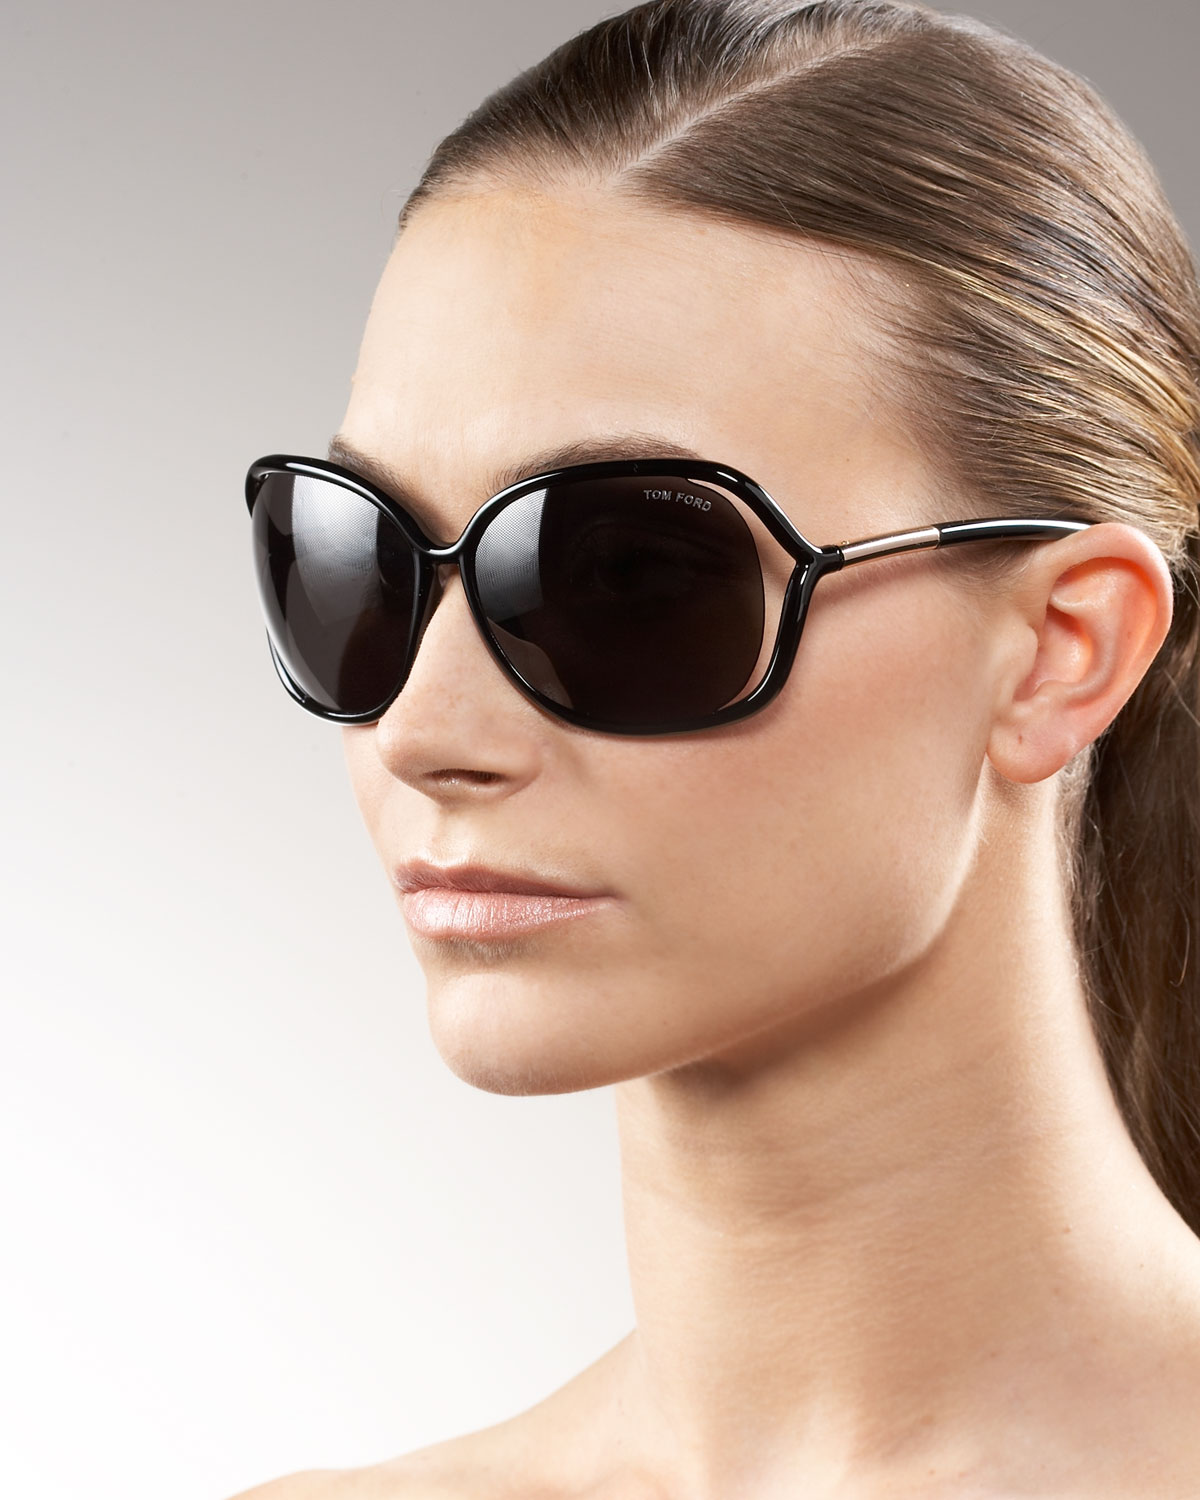 Tom Ford Raquel Roundlens Sunglasses In Transparent